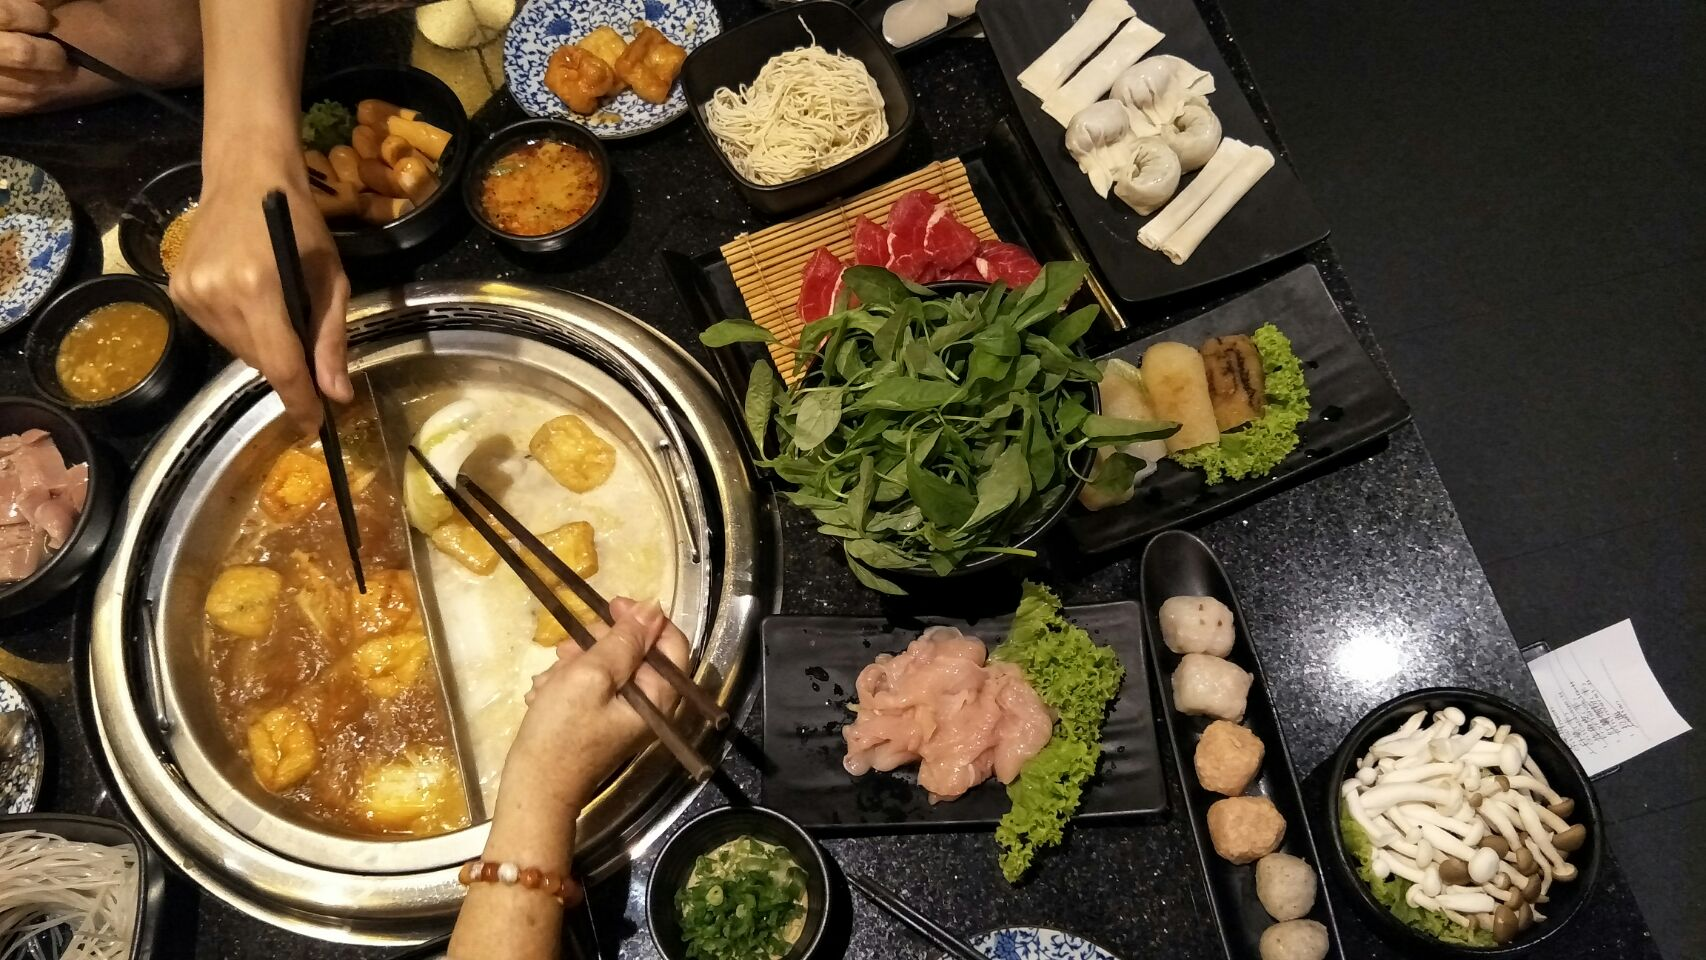 Nourishing hotpots for the skin and soul